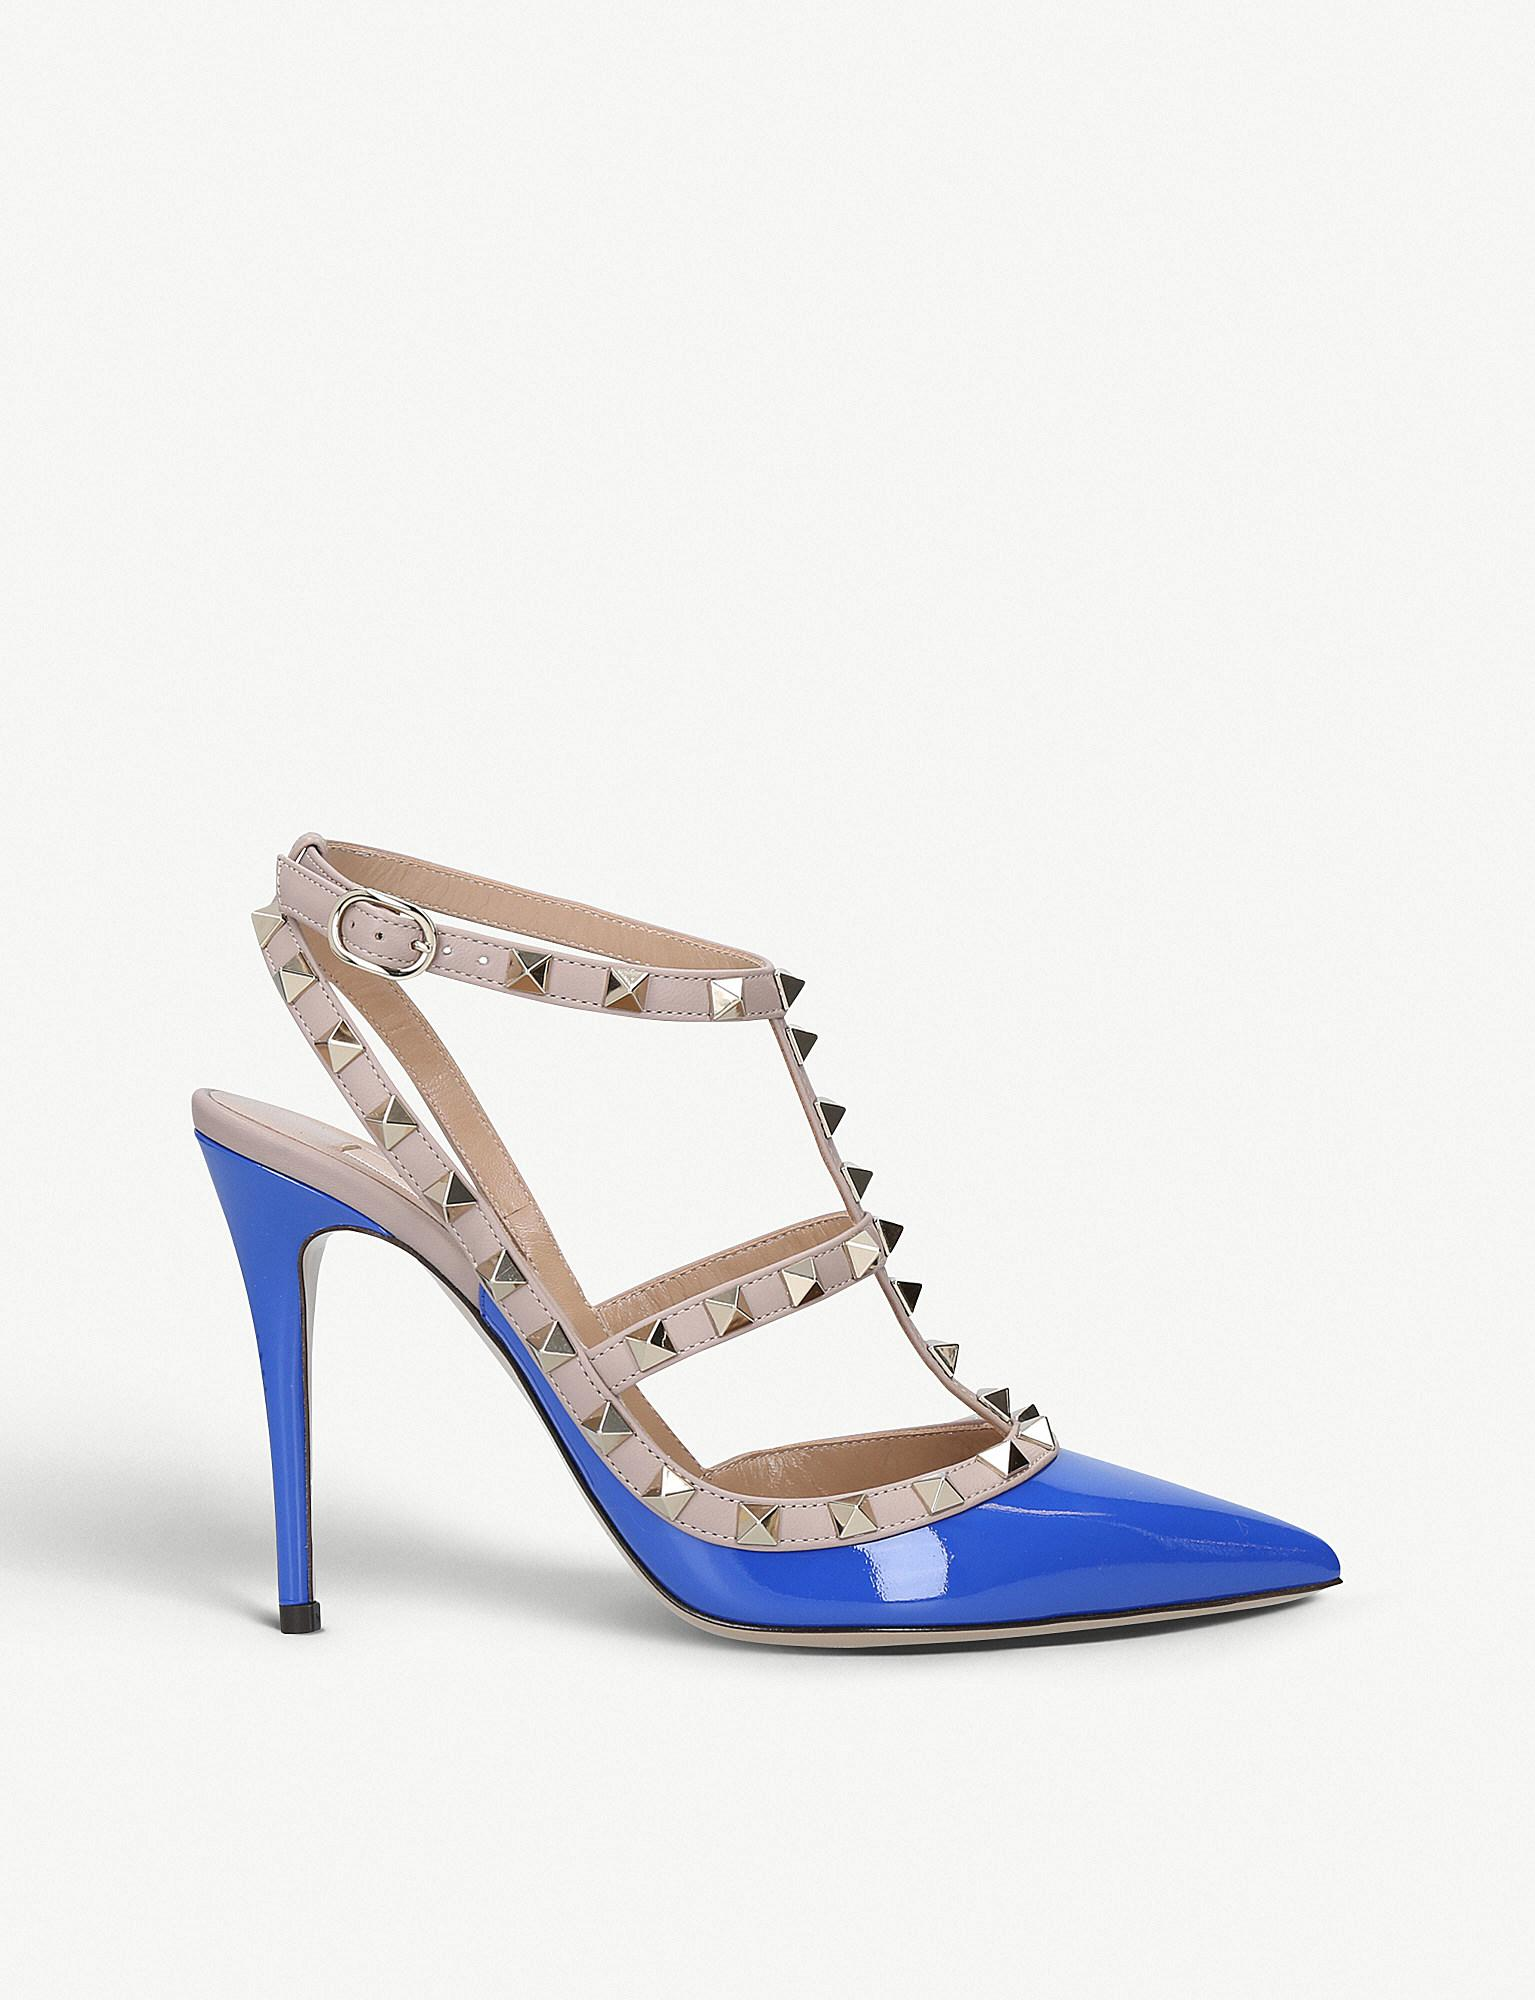 96db8ce2087 Valentino Rockstud 100 T-bar Patent-leather Courts in Blue - Lyst